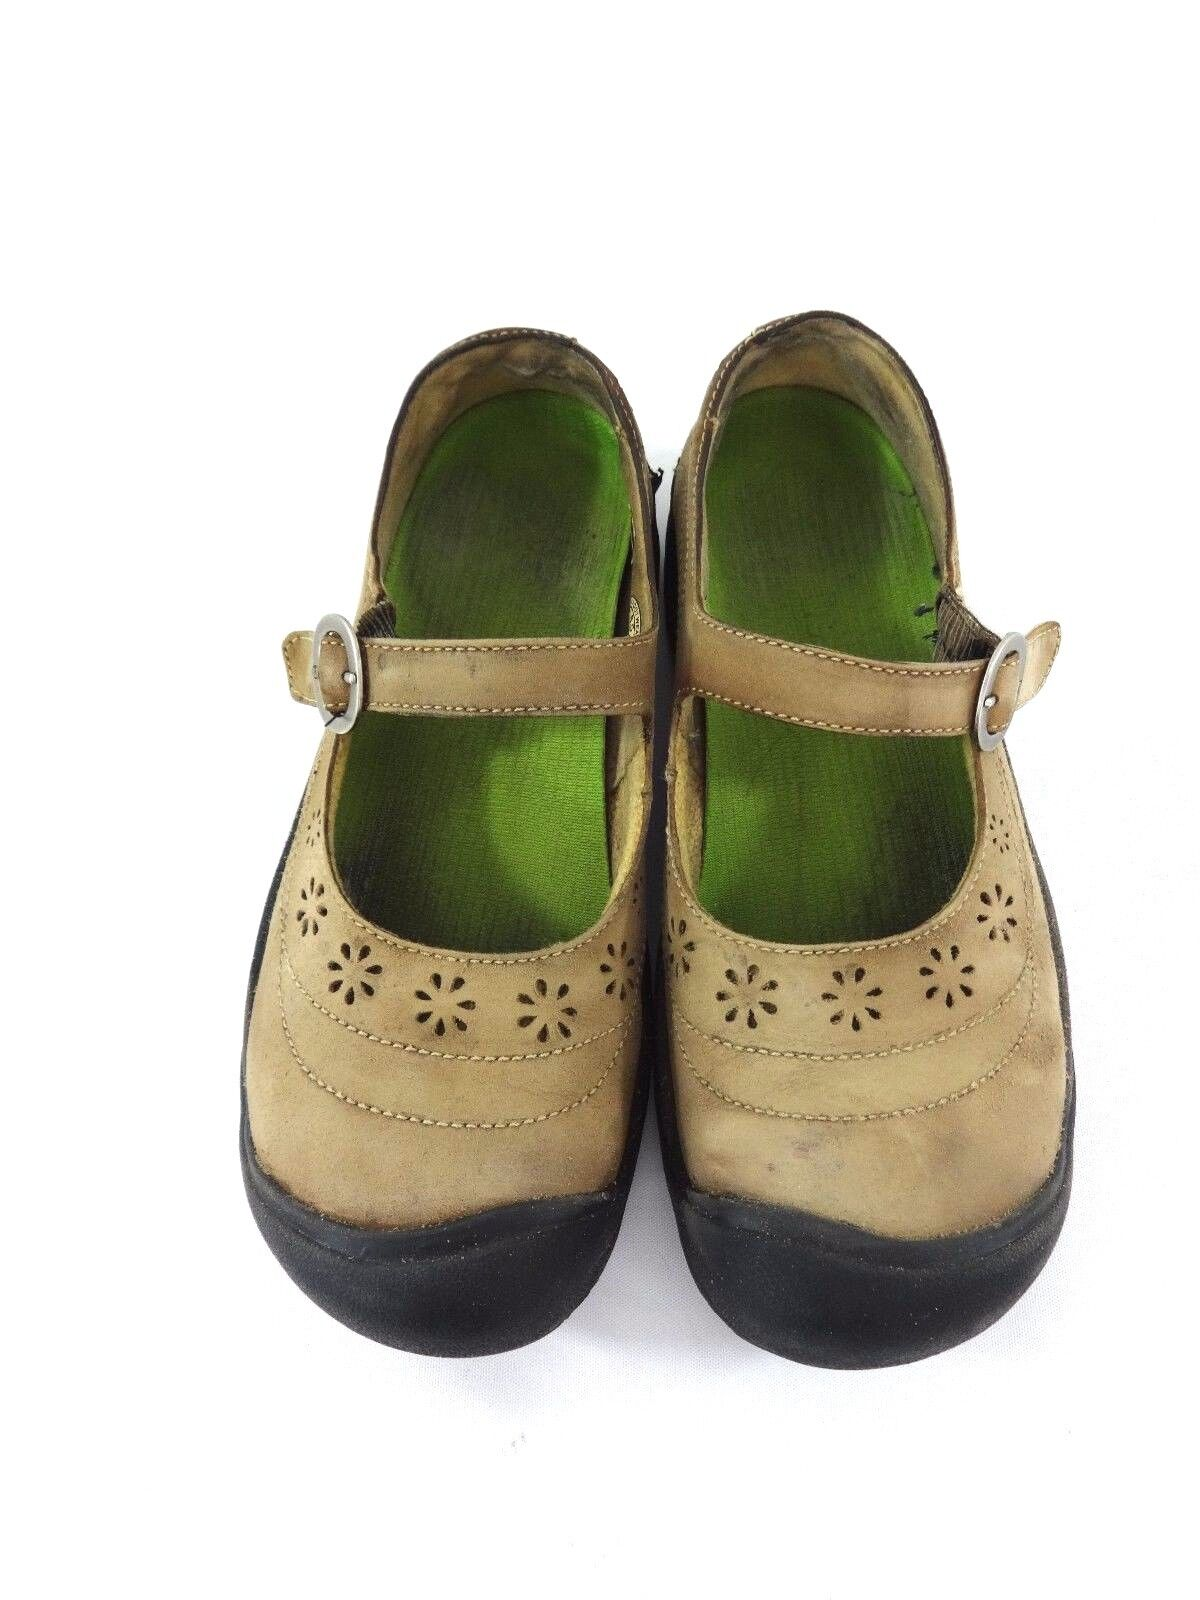 Women's Shoes Keen Brown Mary Janes Shoes Size 8.5 New Comfort Shoes